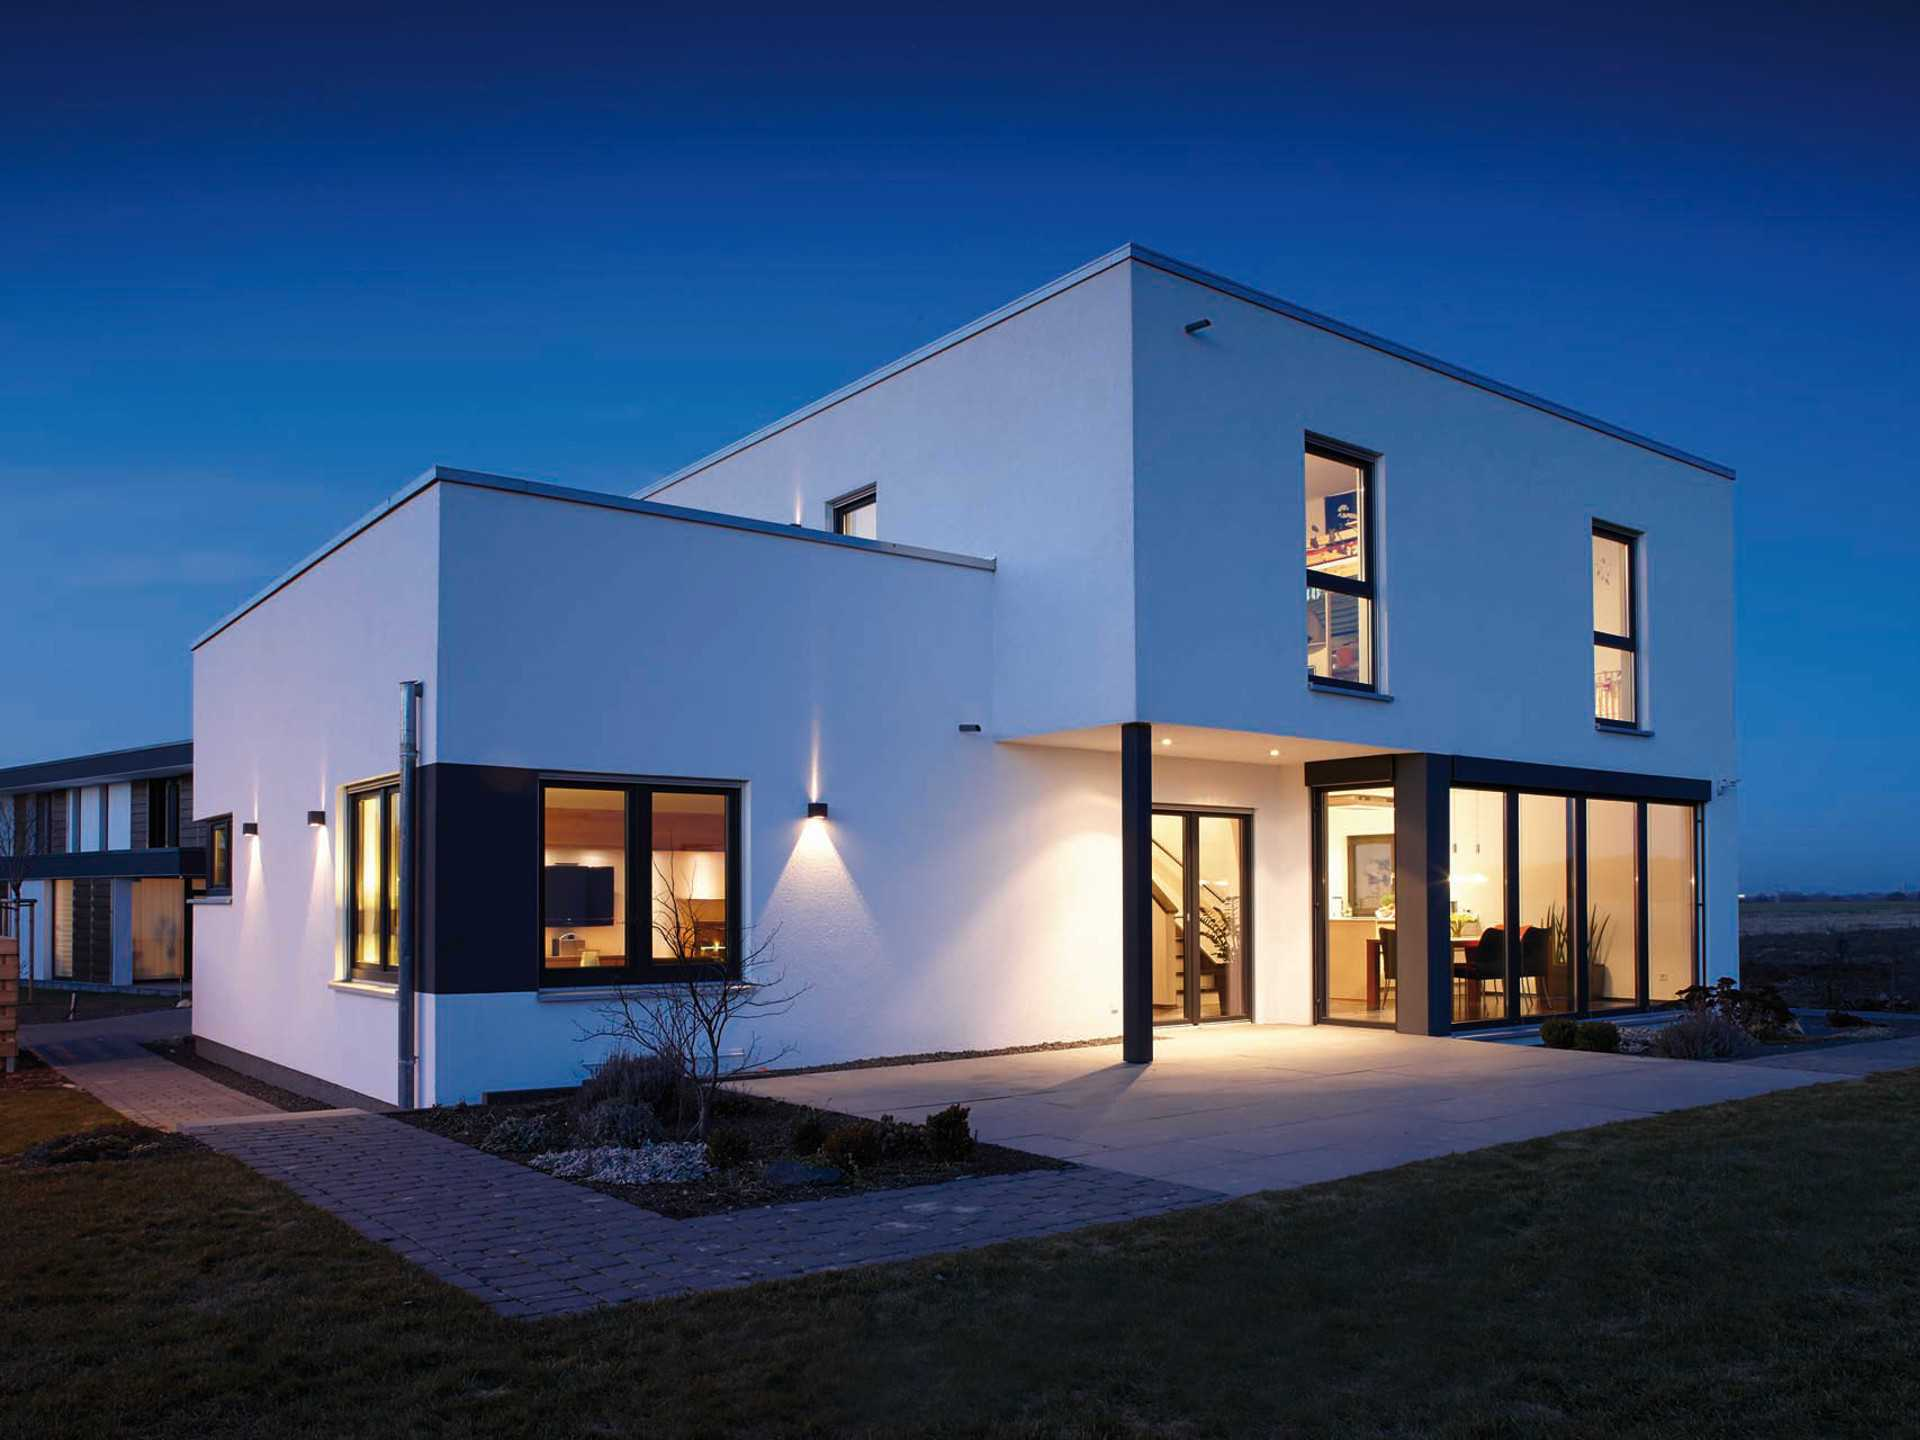 Architektur trend haus fingerhaus for Haus bauen moderne architektur